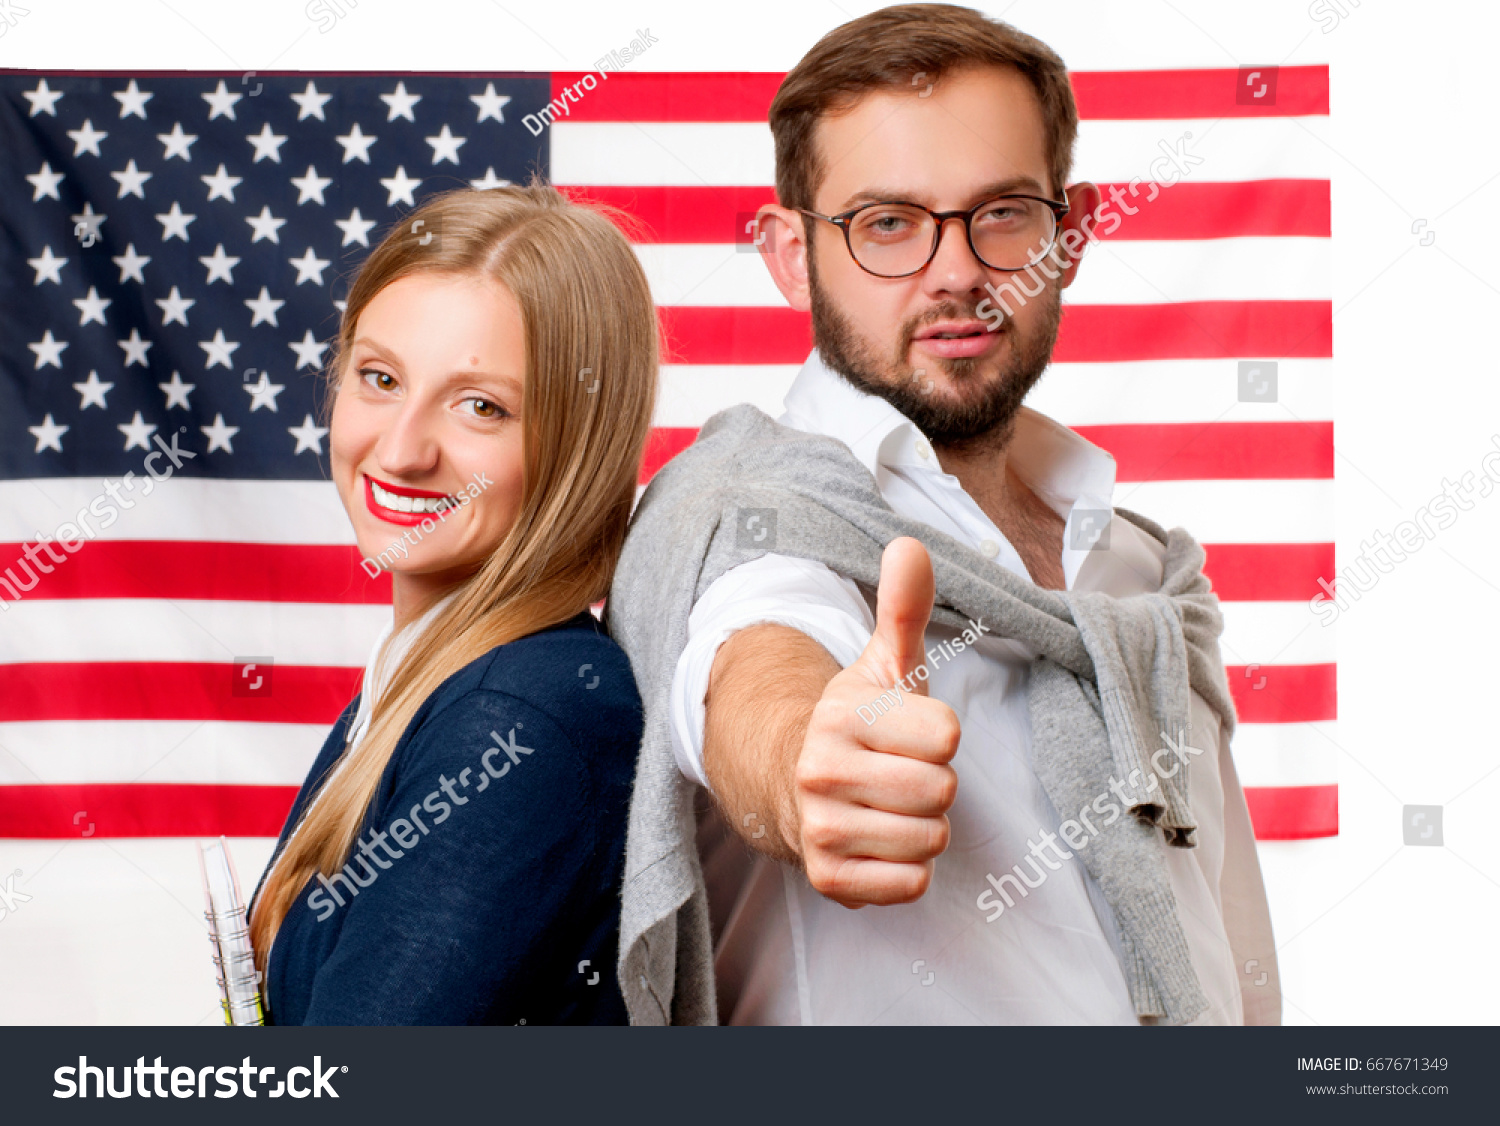 Foreign men looking for american women